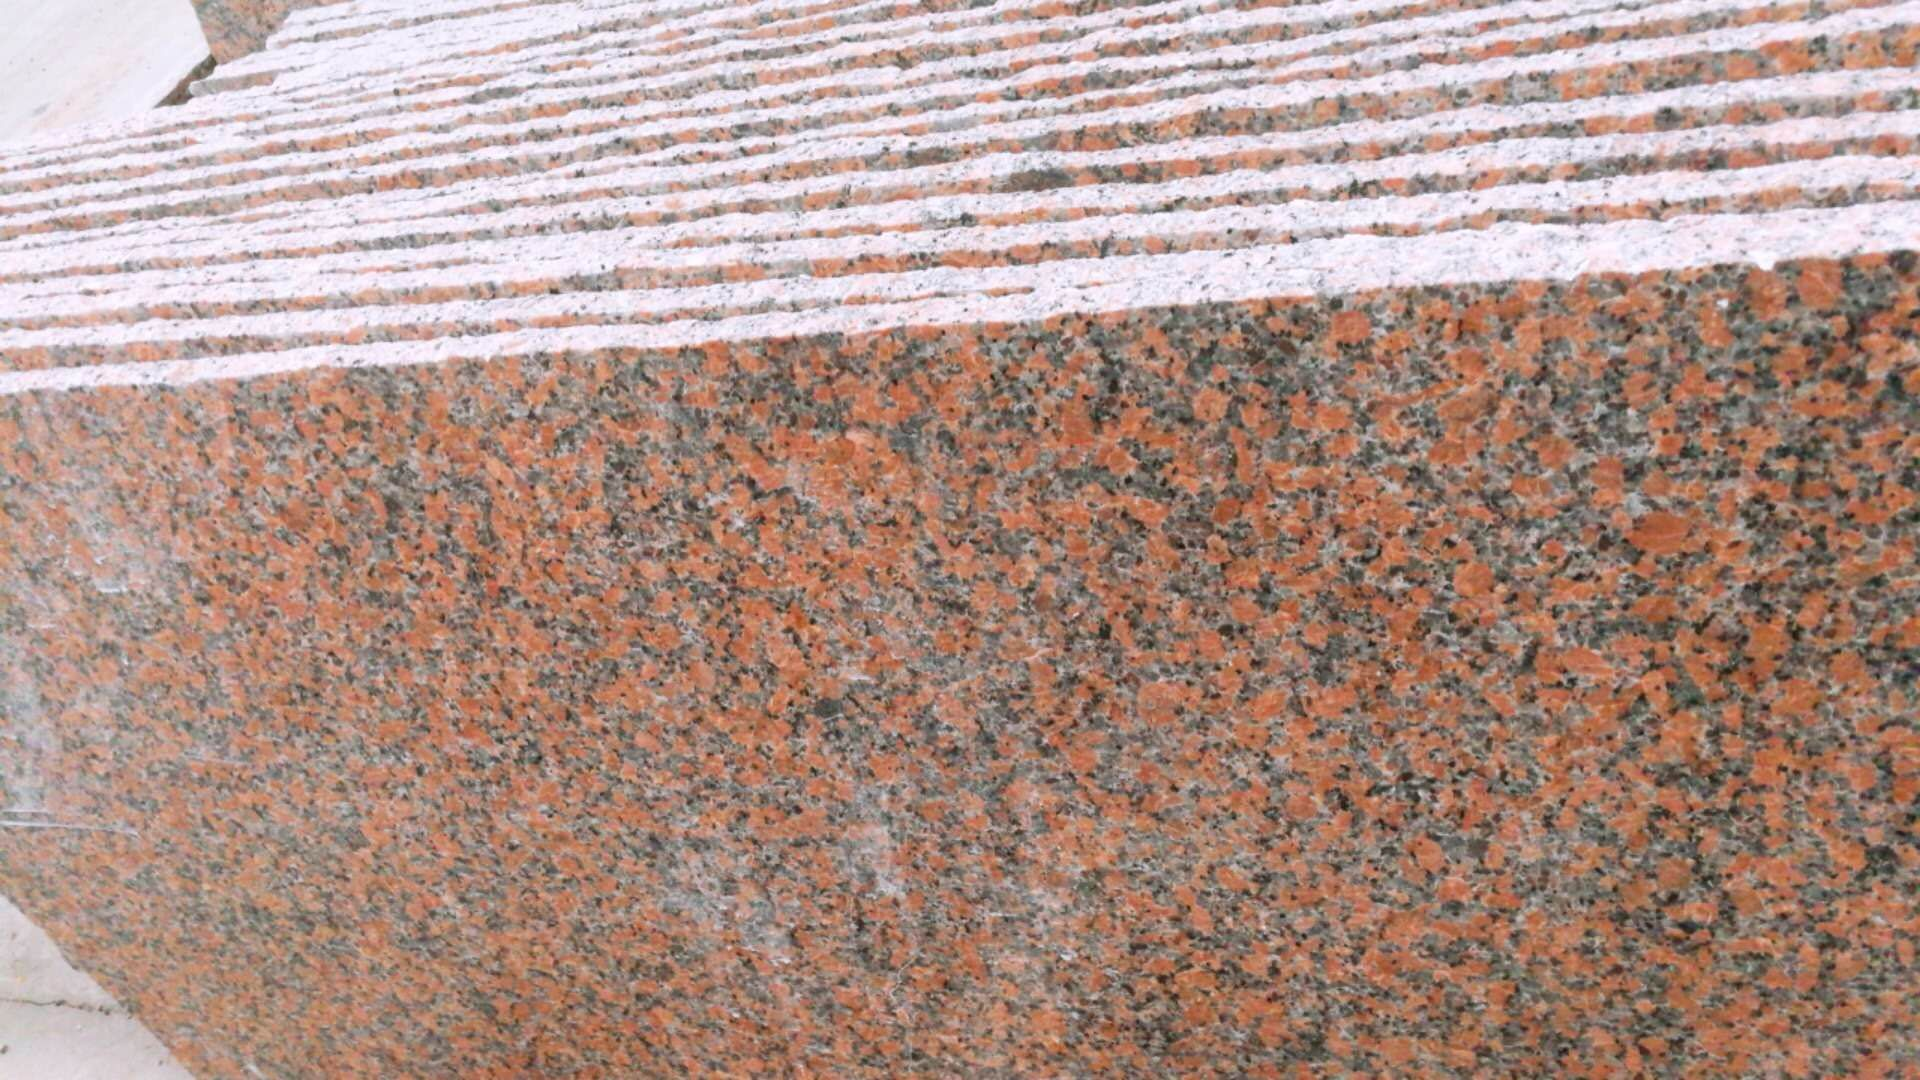 A quality marple red granite